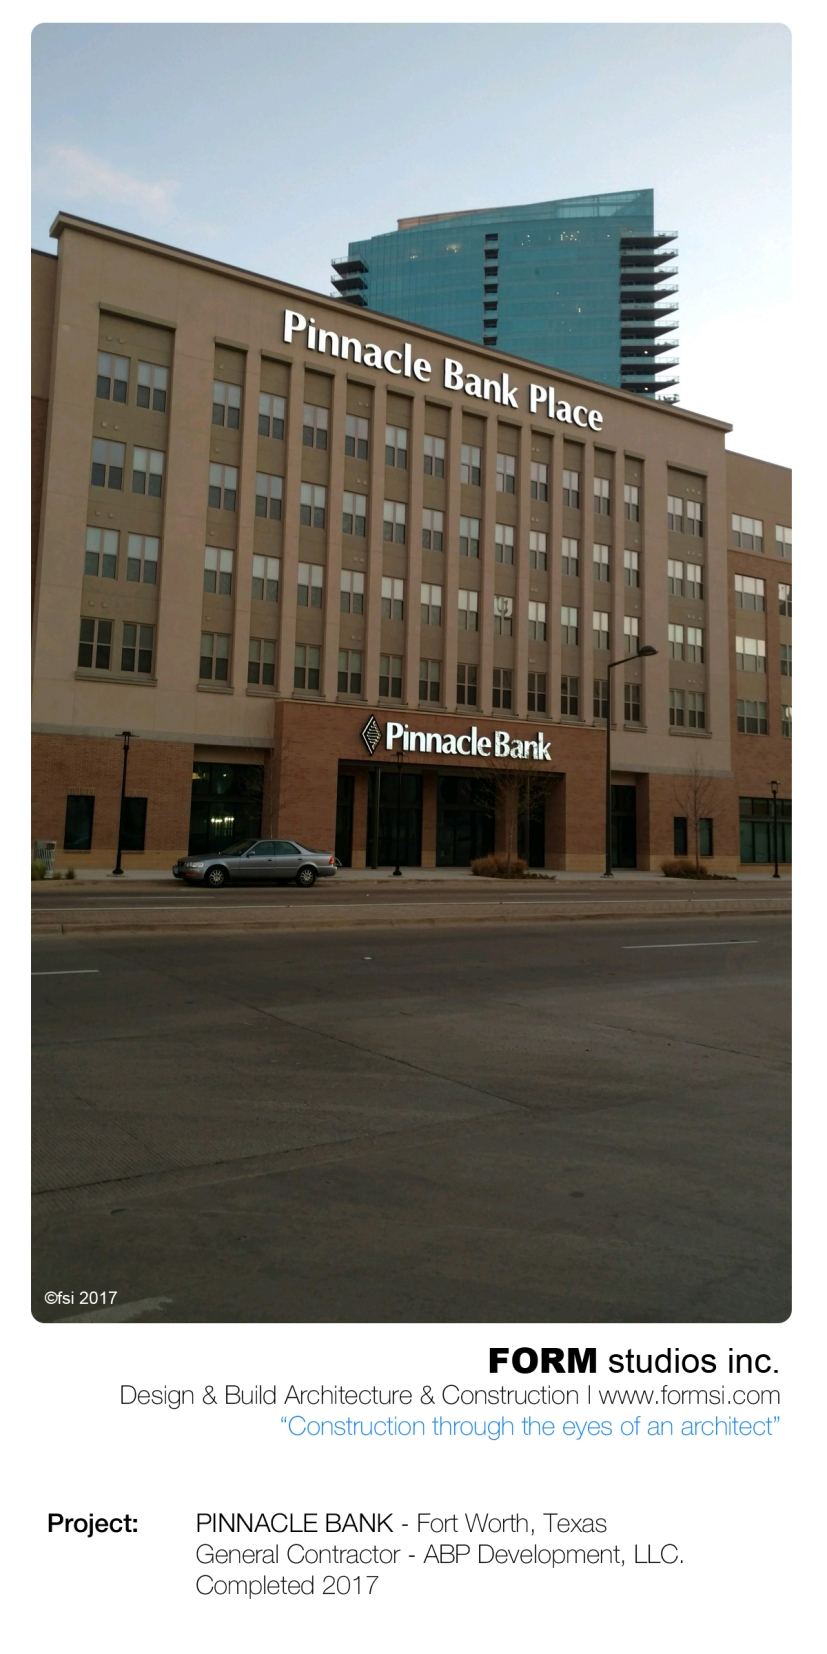 PINNACLE BANK - FORT WORTH, TX